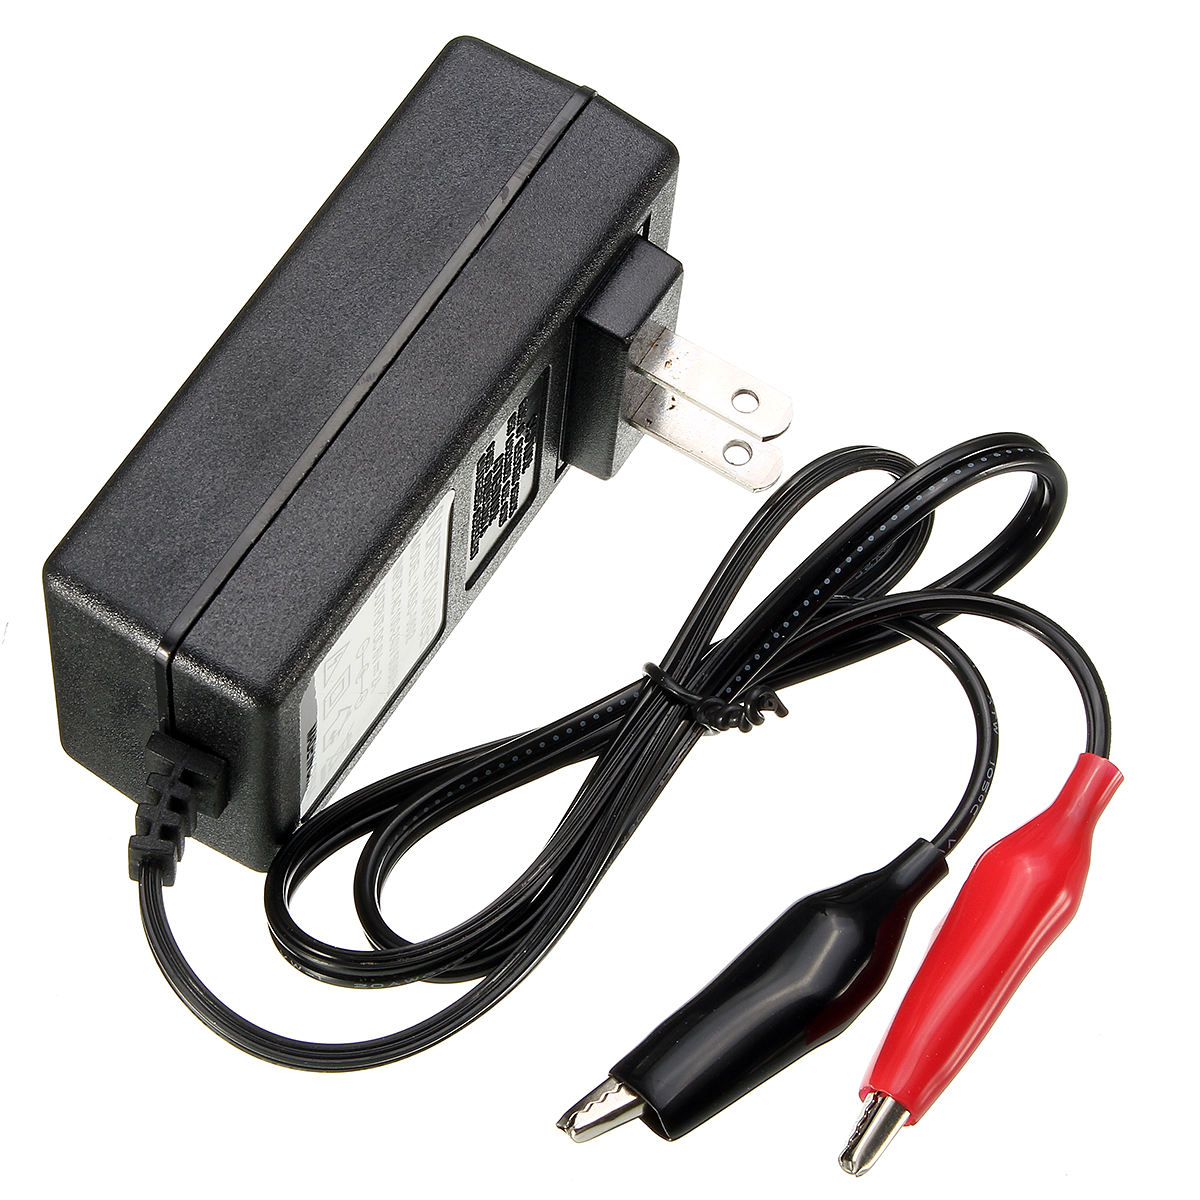 12V 2A battery charger for 12V lead acid batteries